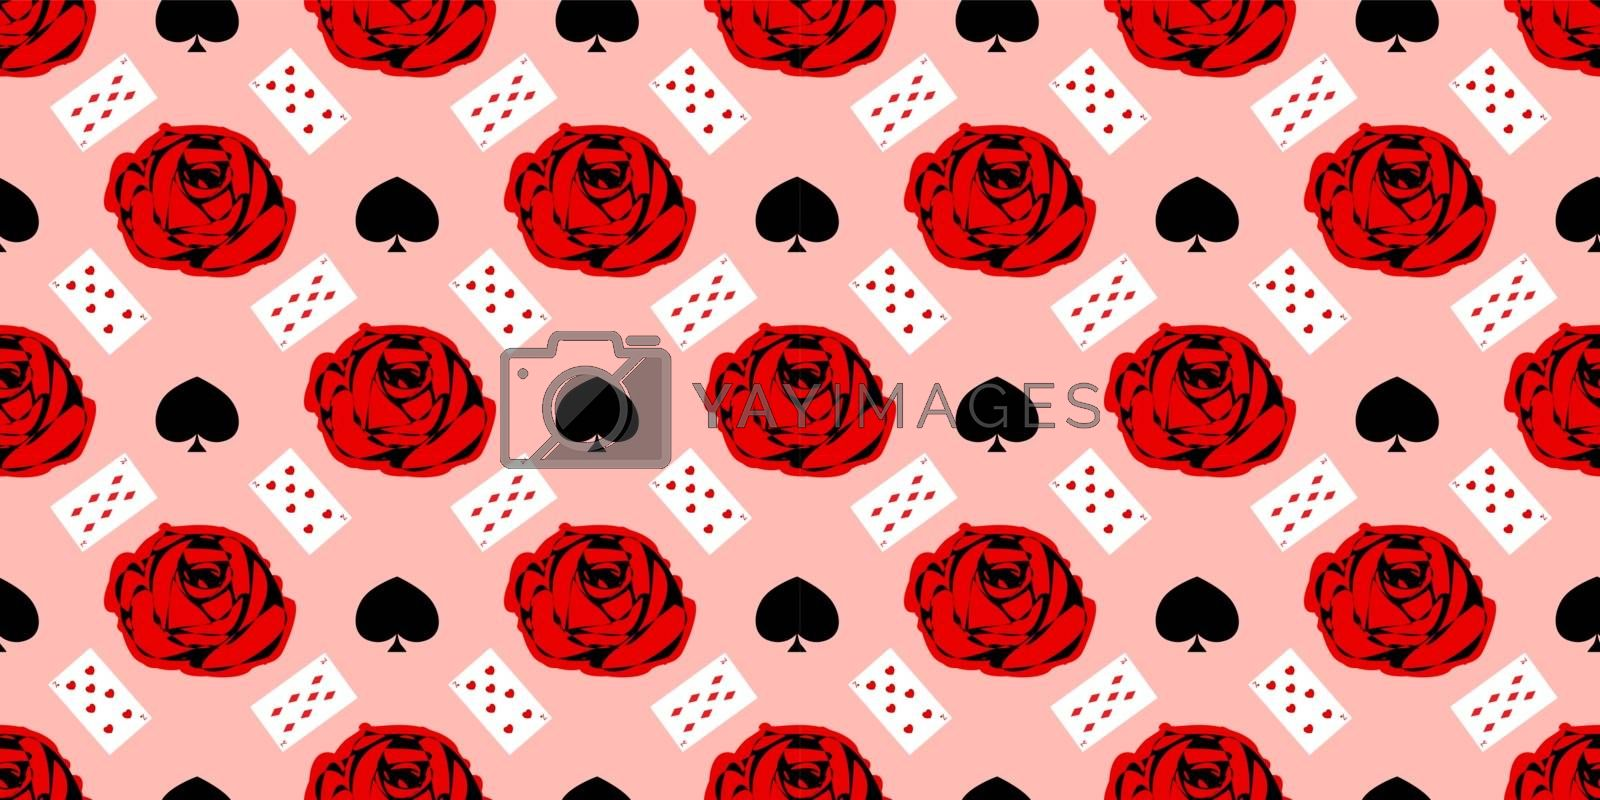 playing cards seamless pattern. Red rose on a pink background.